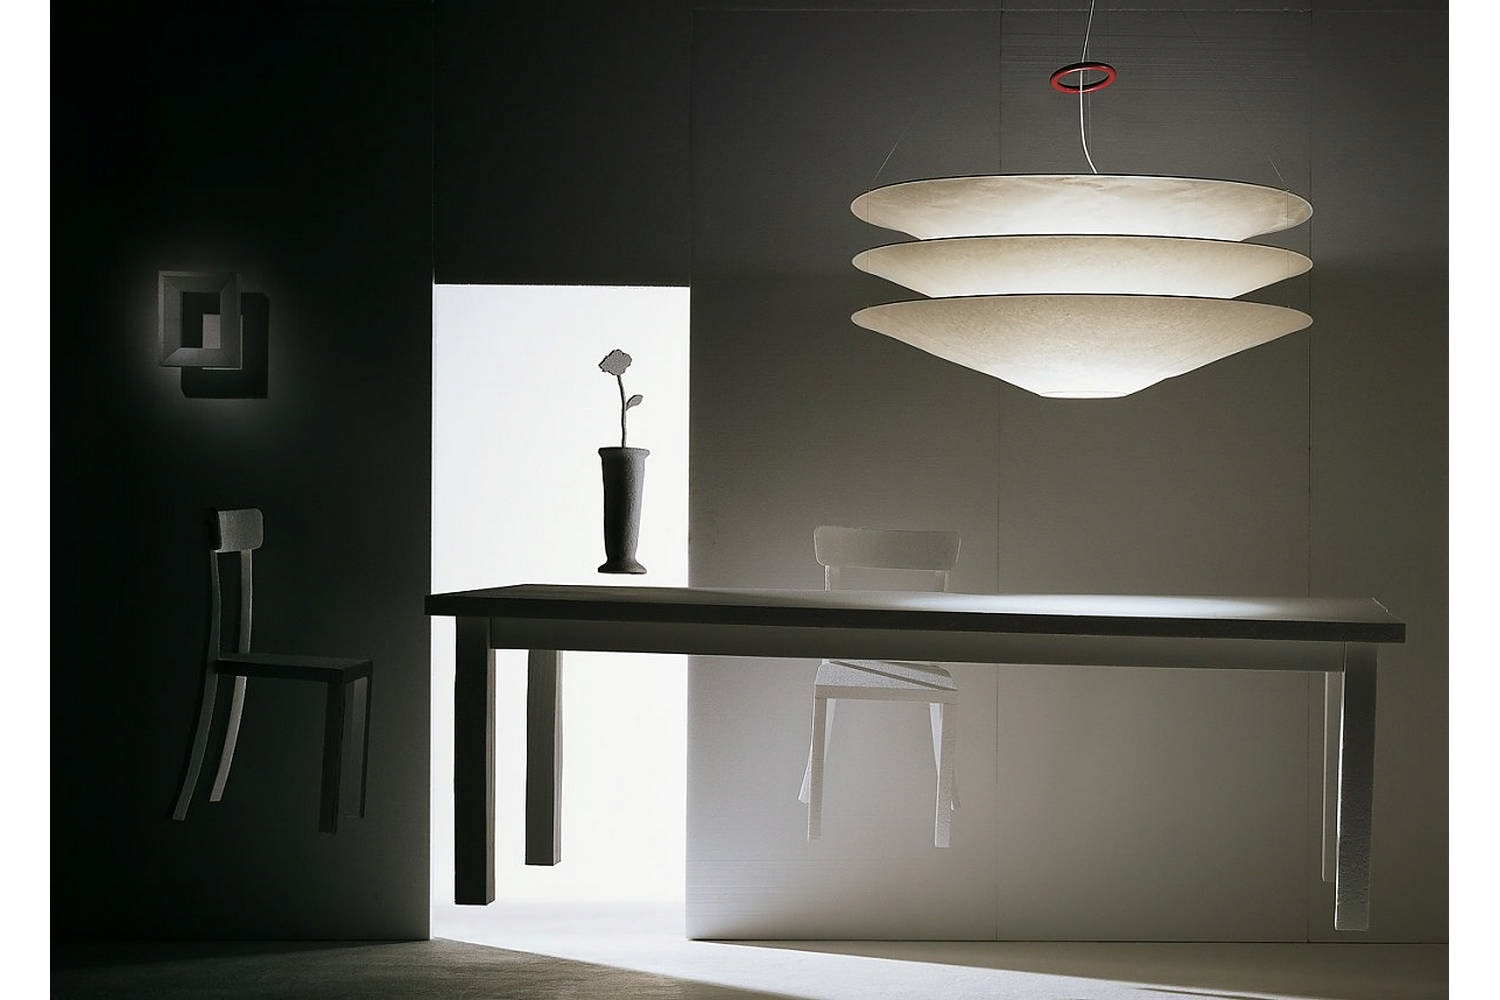 Floatation Suspension Lamp by Ingo Maurer for Ingo Maurer